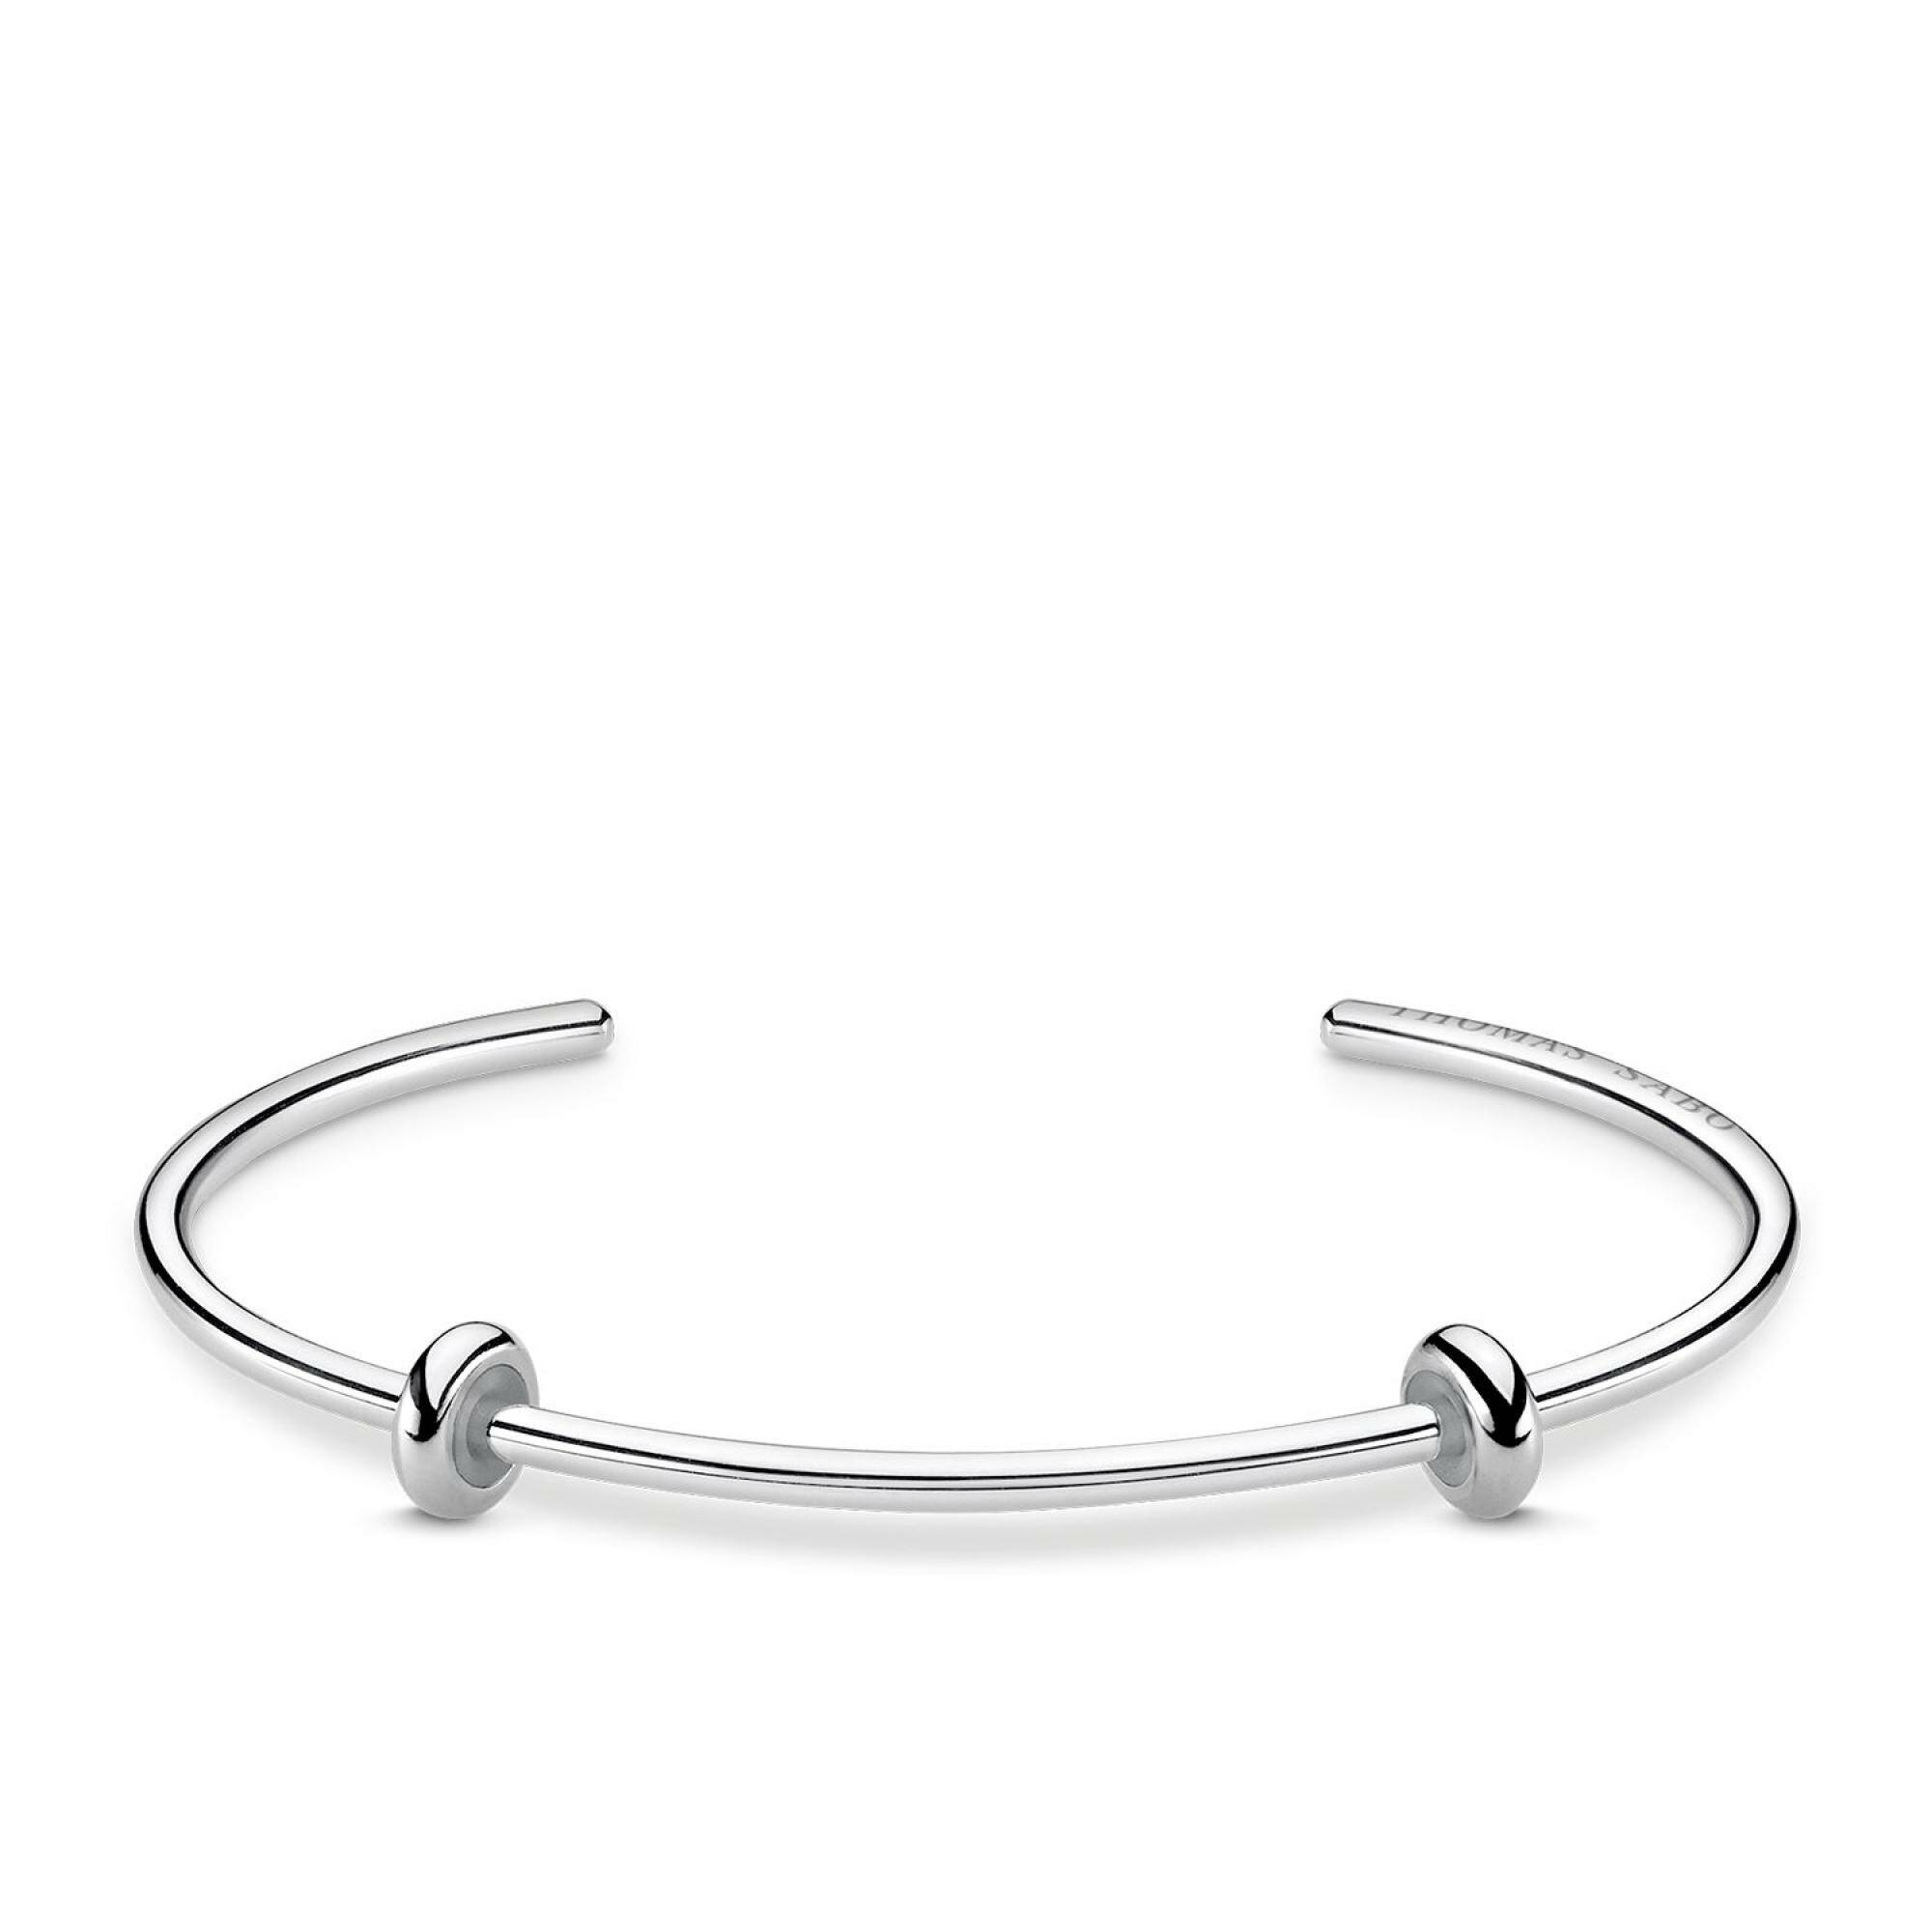 [THOMAS SABO] BANGLE. 16.5CM